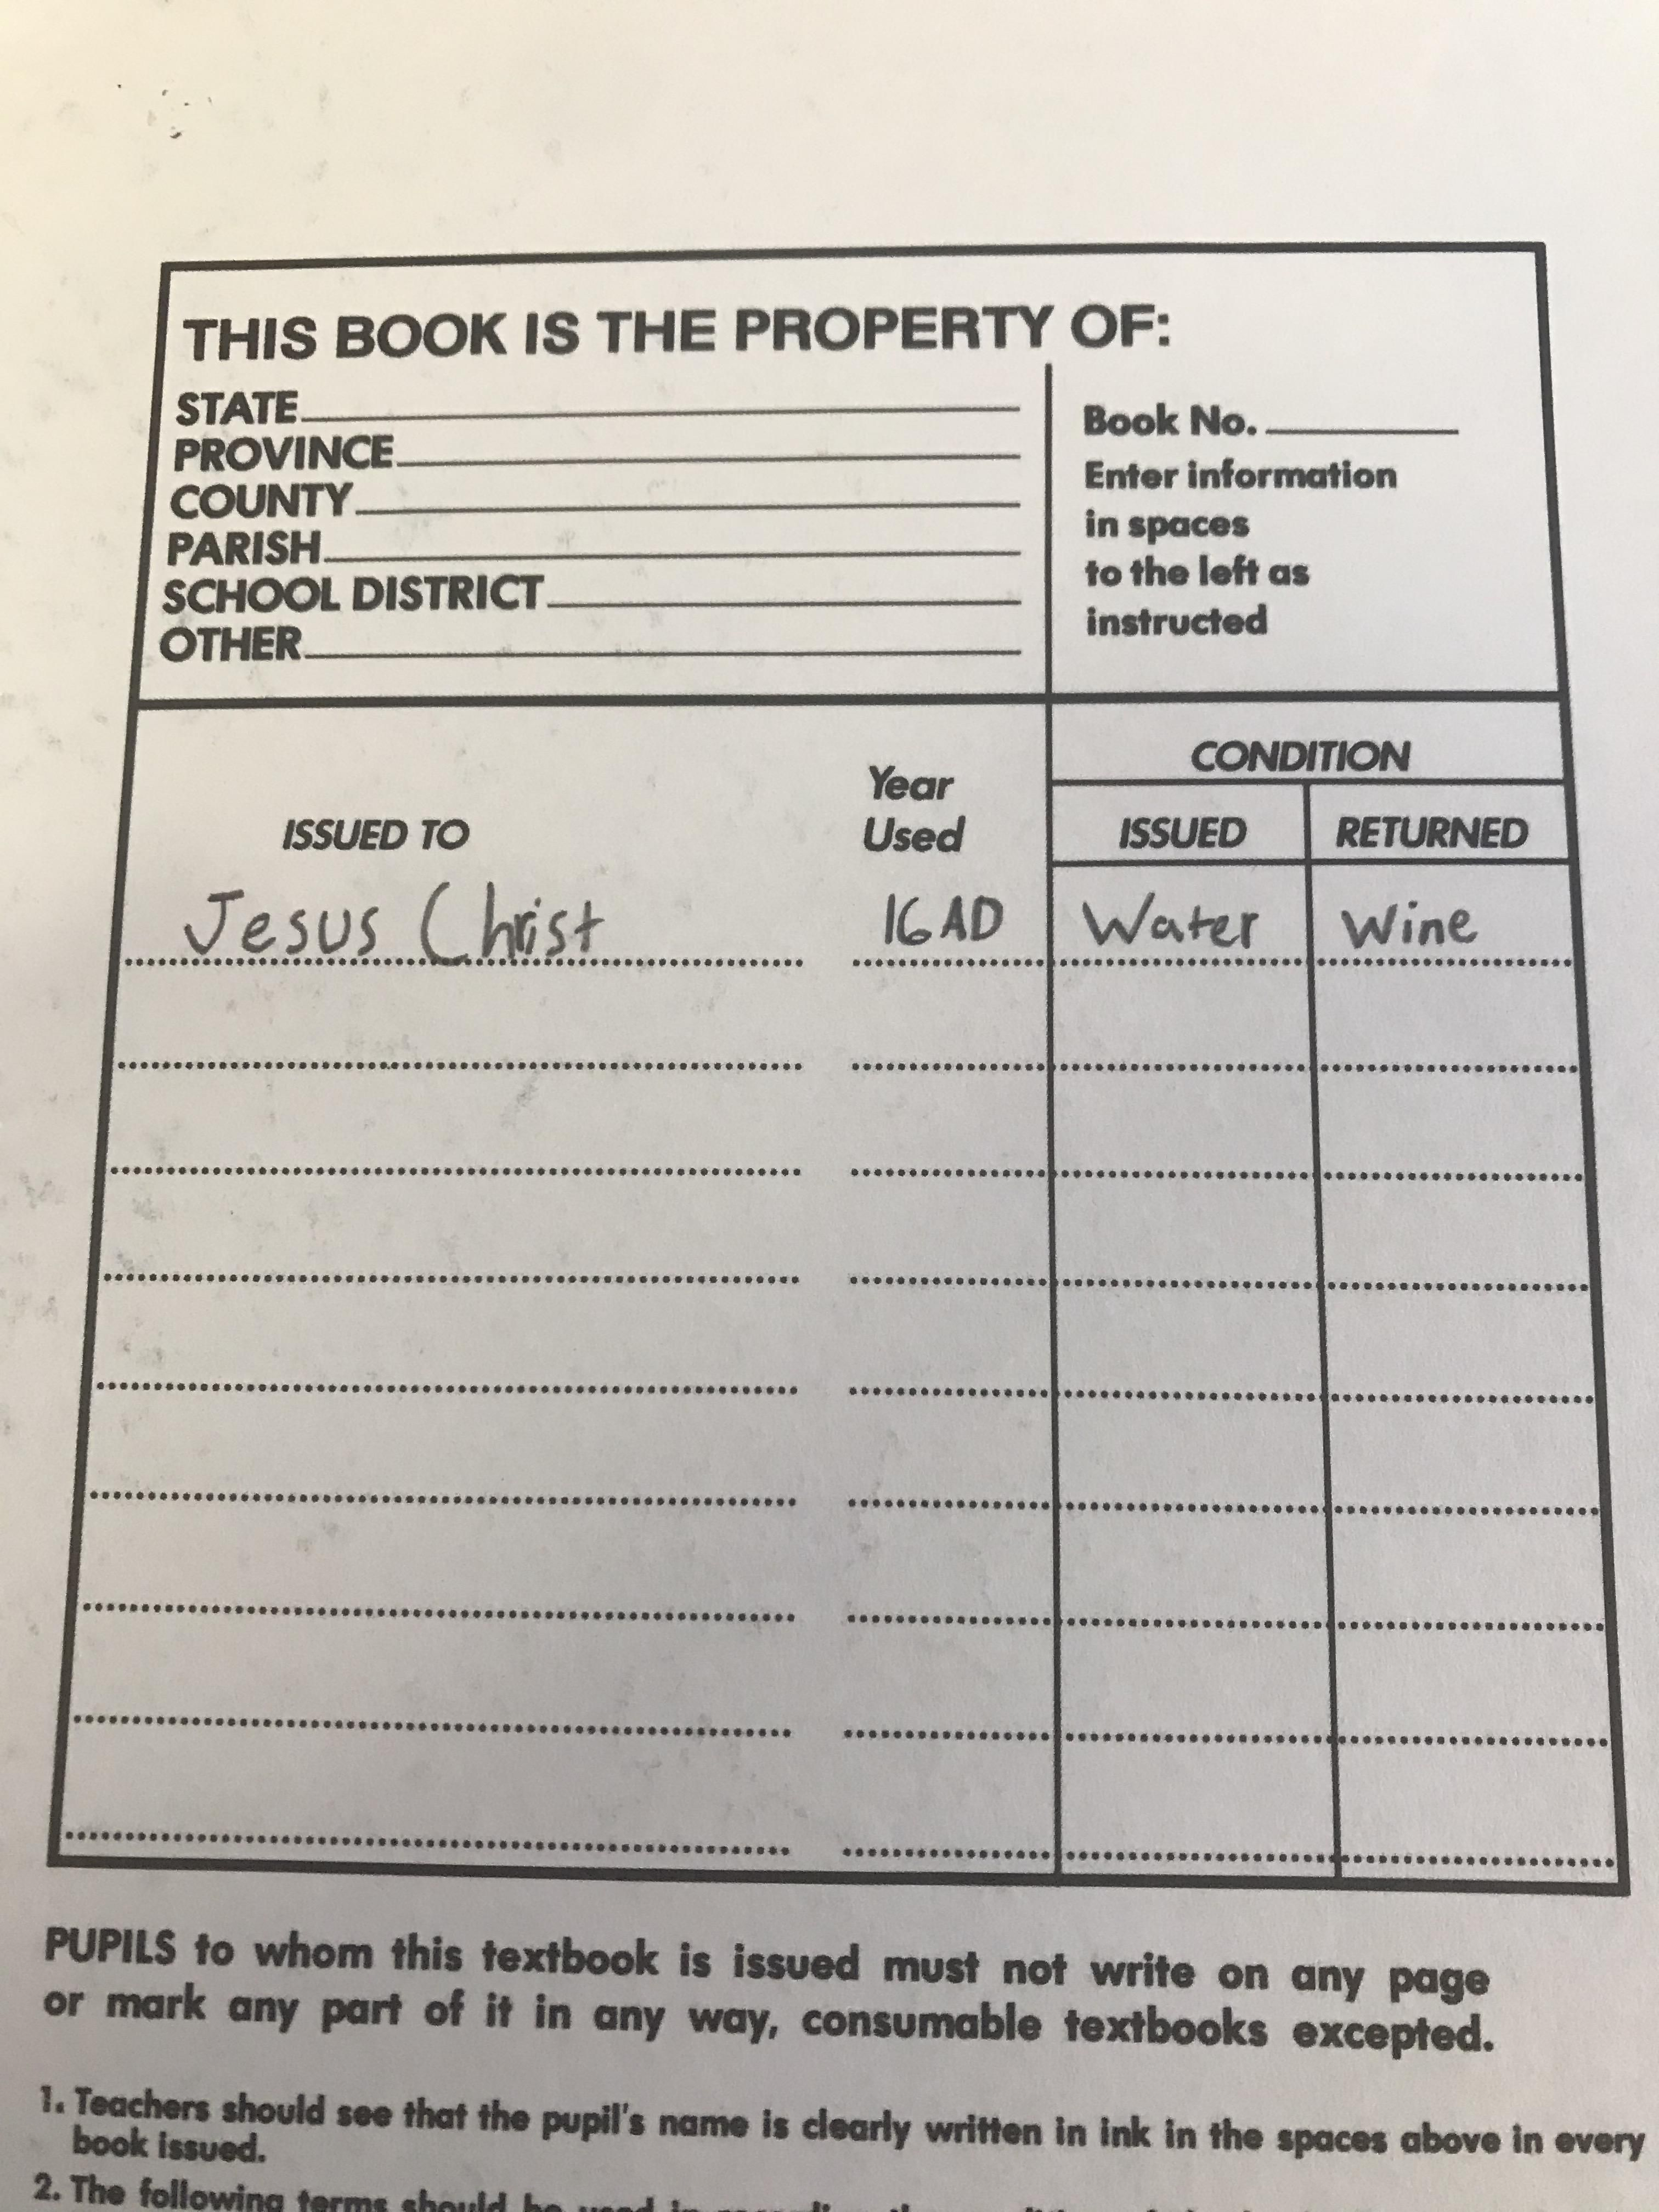 Is this textbook Gospel?